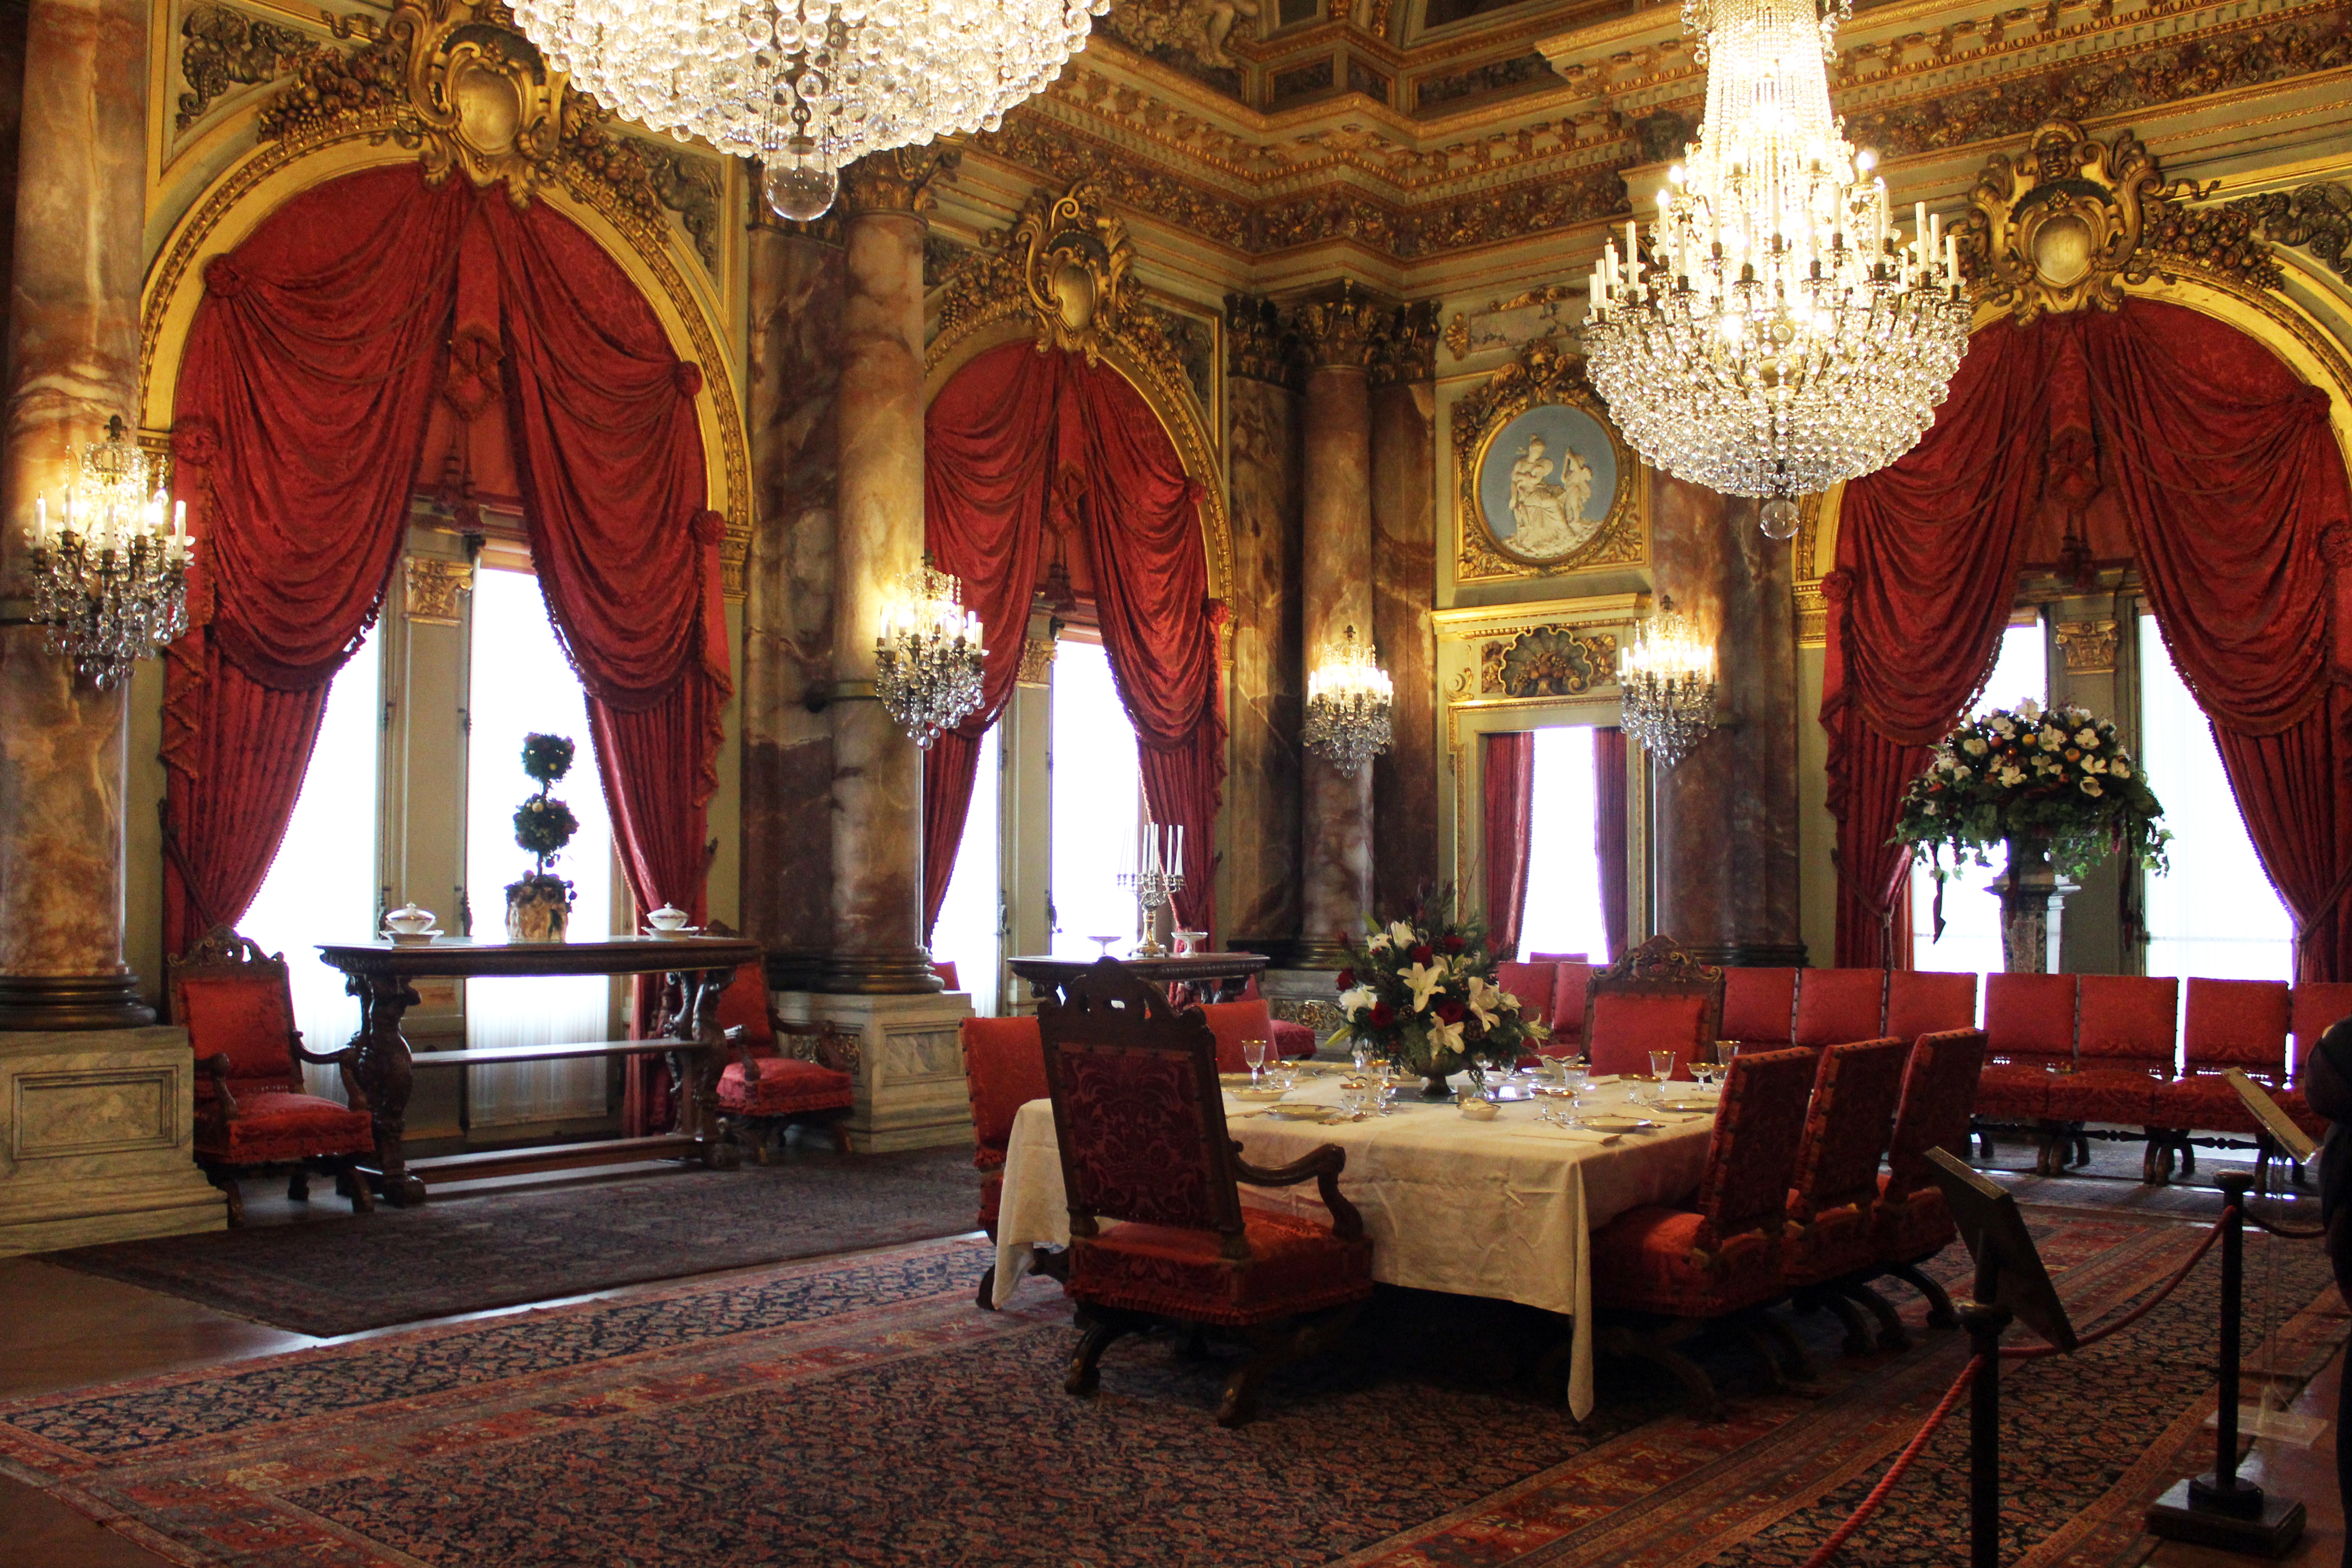 The Breakers - Newport RI | The Dining Room of The Breakers features twelve Corinthian columns, 18-, 22-, and 24-karat gilded walls, and an elaborate ceiling fresco. Two baccarat crystal chandeliers shimmer from above. Surely more than a few elite and famous guests have dined in the opulence of this majestic room.